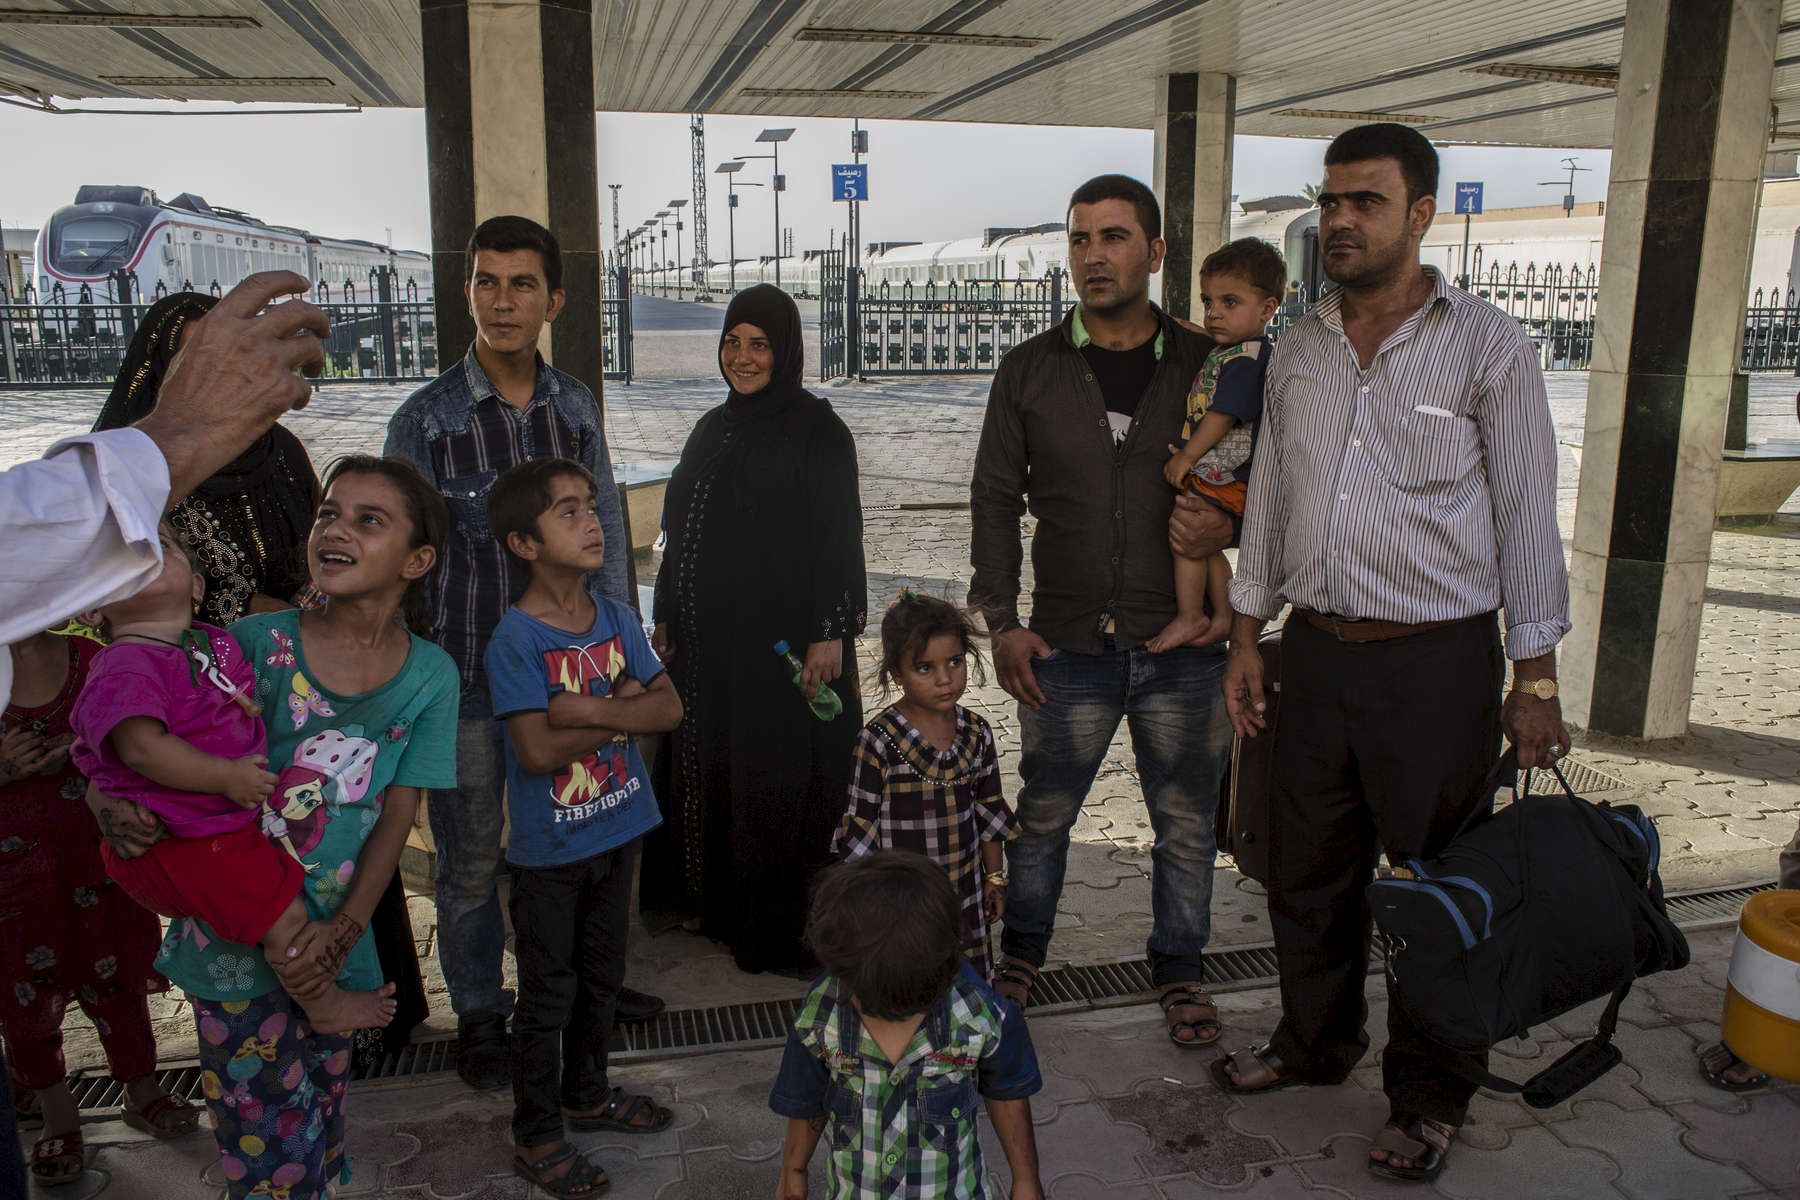 11/08/2016 -- Baghdad, Iraq -- A family of IDPs from Mosul are returning to Basra by train, their new home since fleeing ISIS, after visiting family in Baghdad.